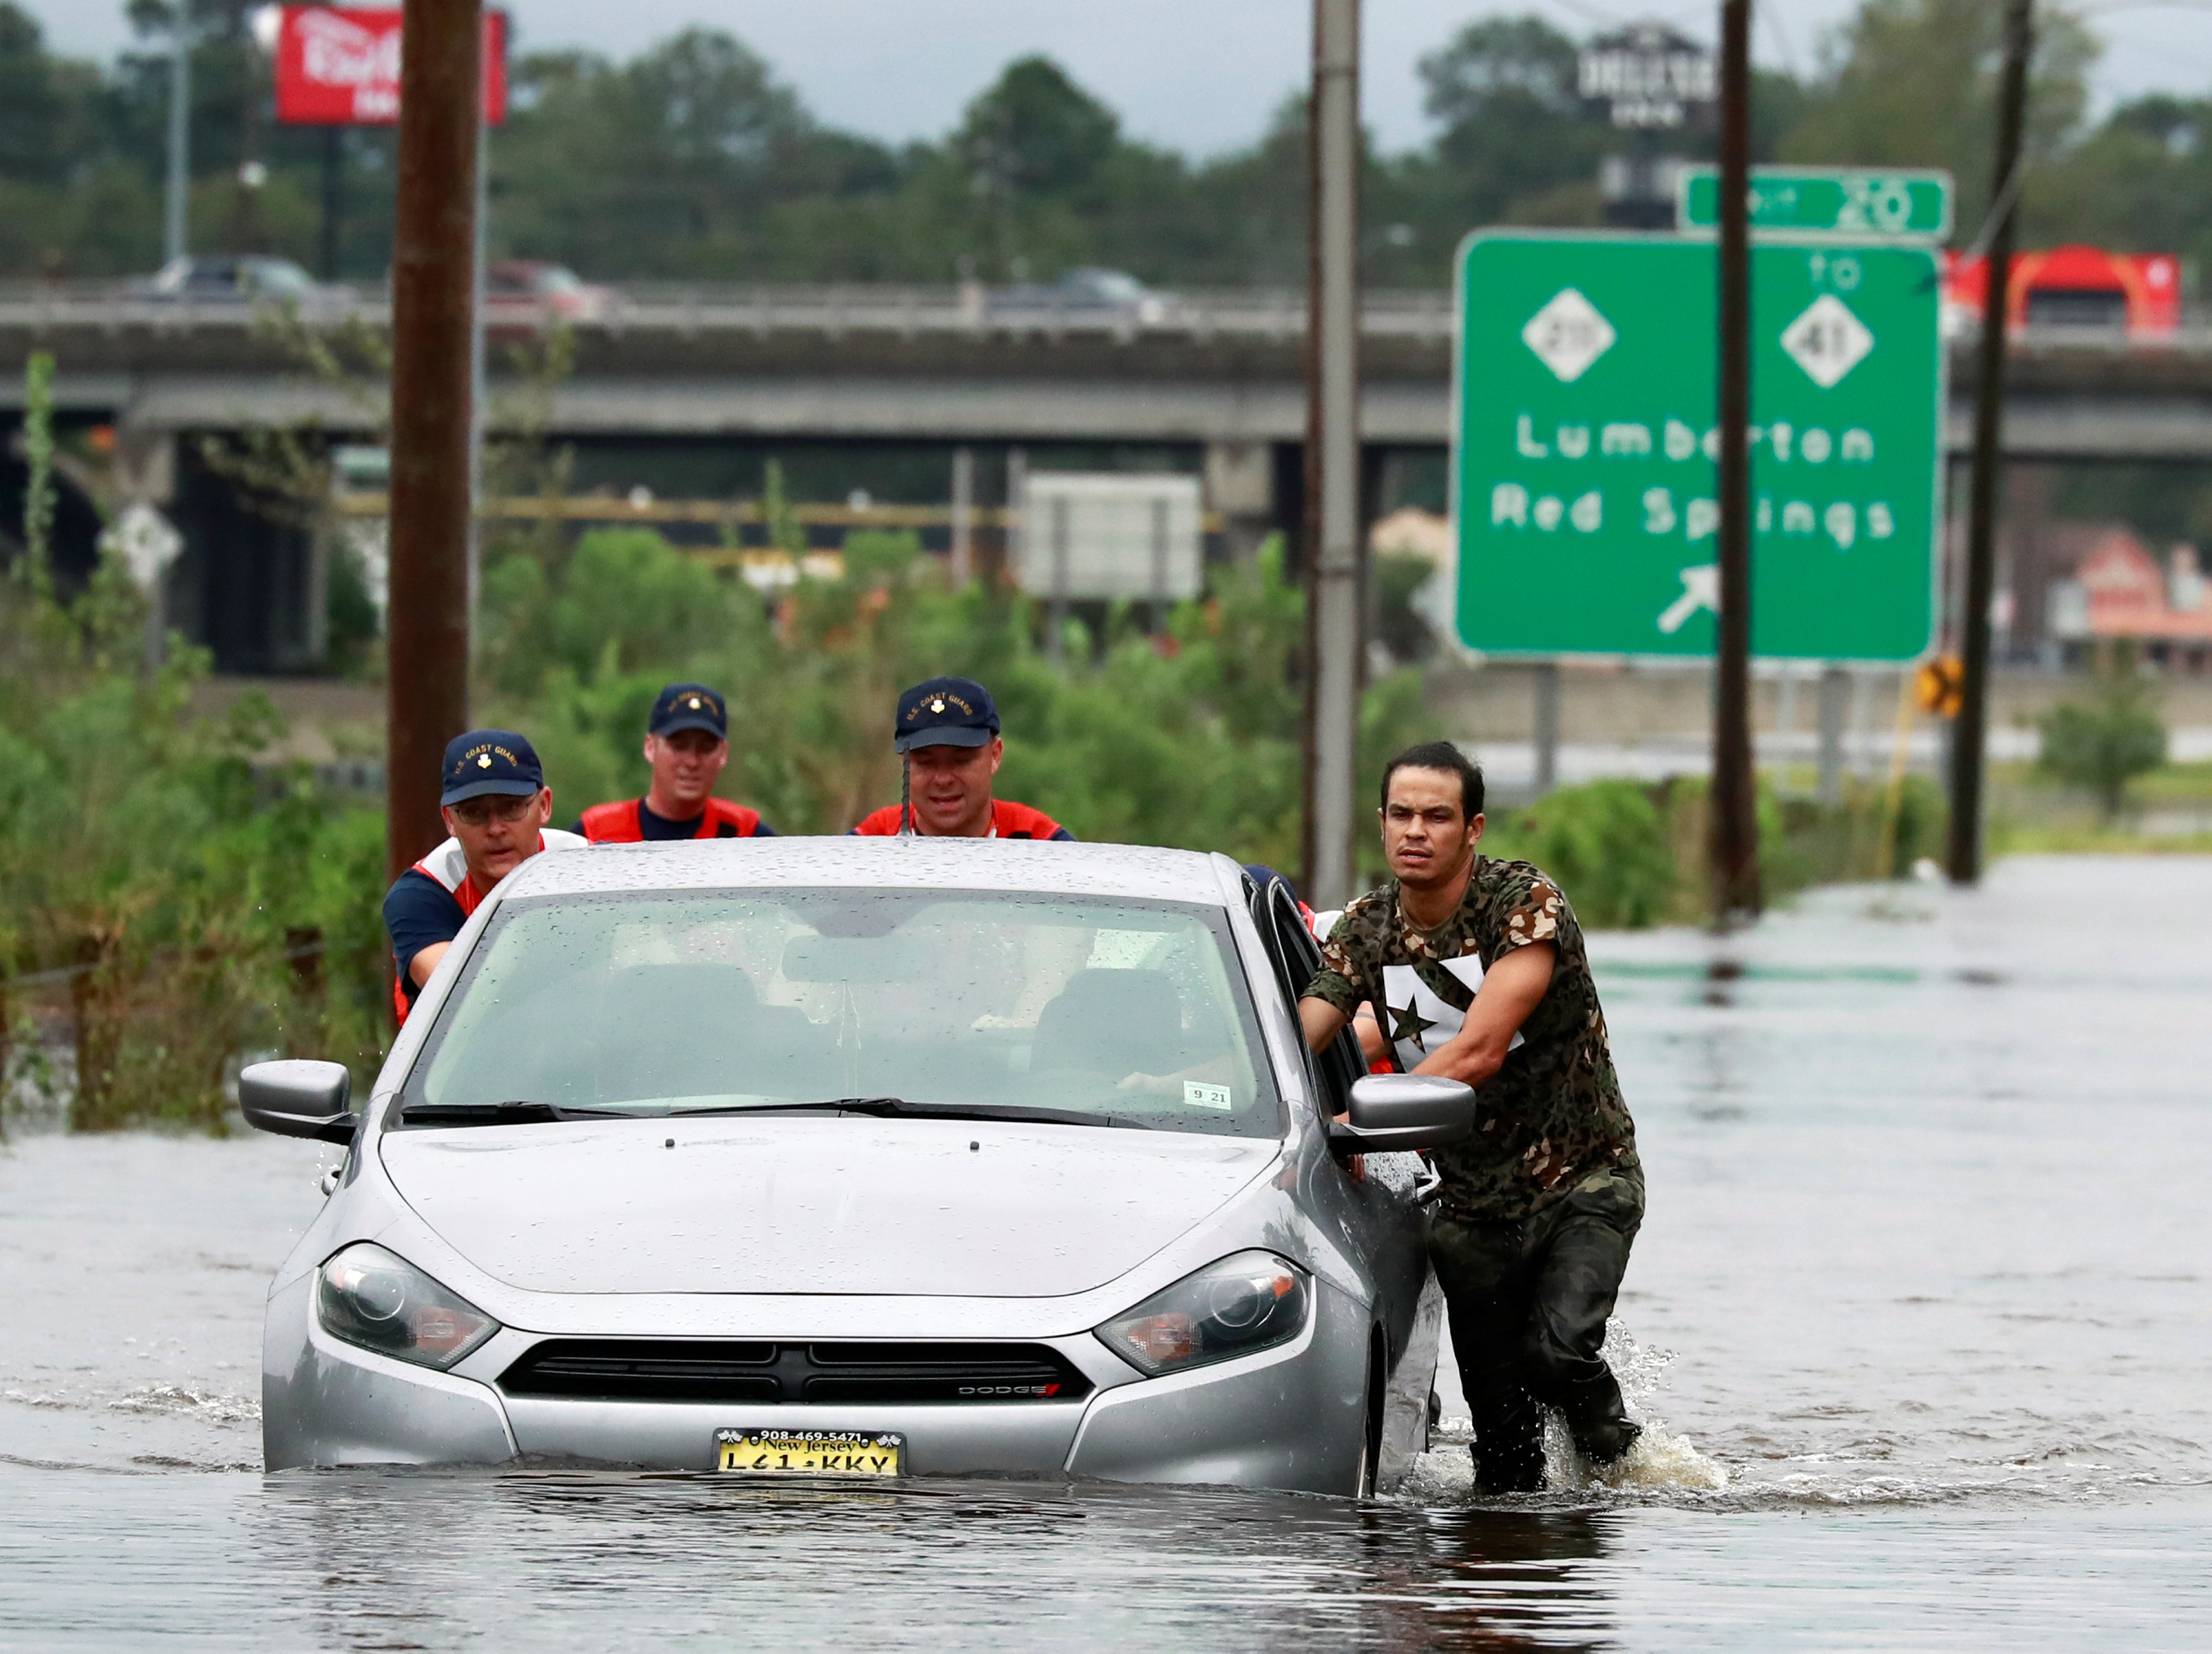 Members of the Coast Guard help a stranded motorist in the flood waters caused by Hurricane Florence in Lumberton